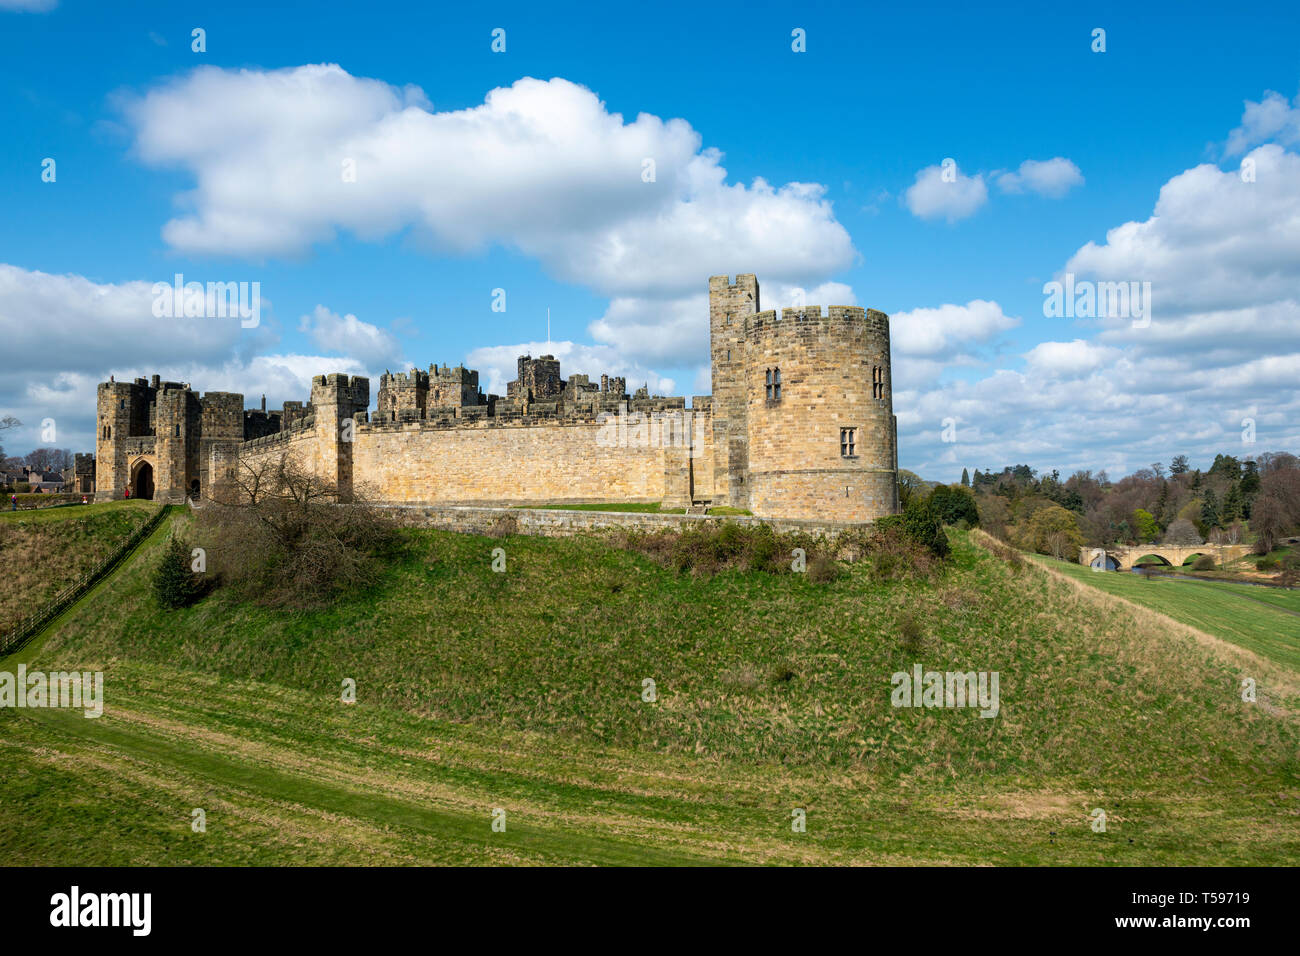 Gateway, Record Tower and Lion Bridge at Alnwick Castle in Northumberland, England, UK Stock Photo